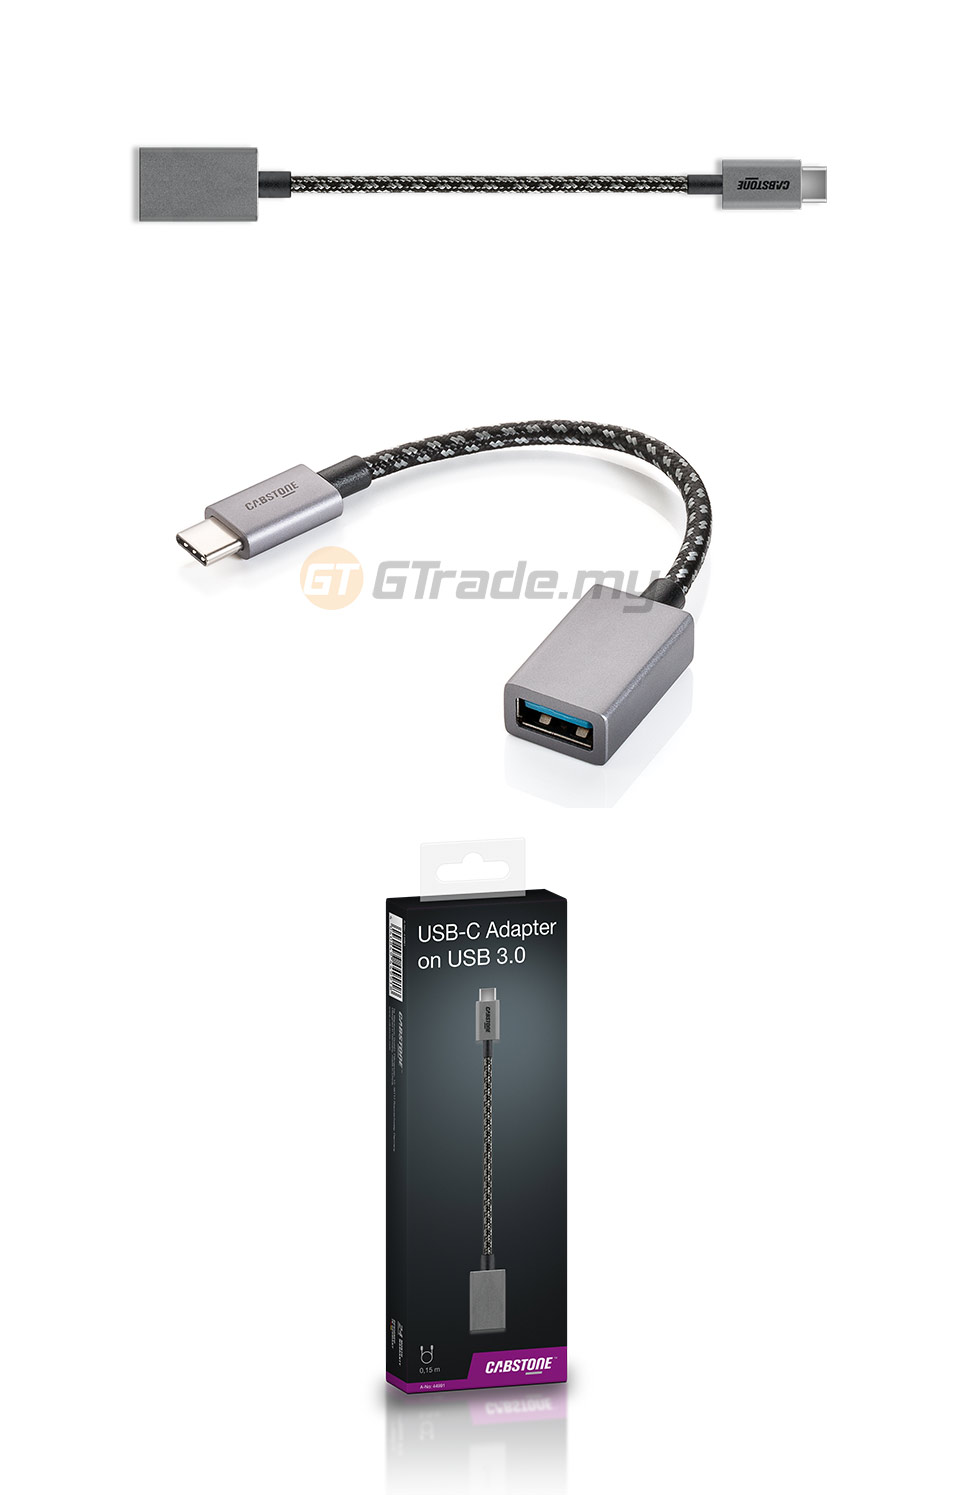 cabstone-metal-usb-c-to-usb-3-adapter-p